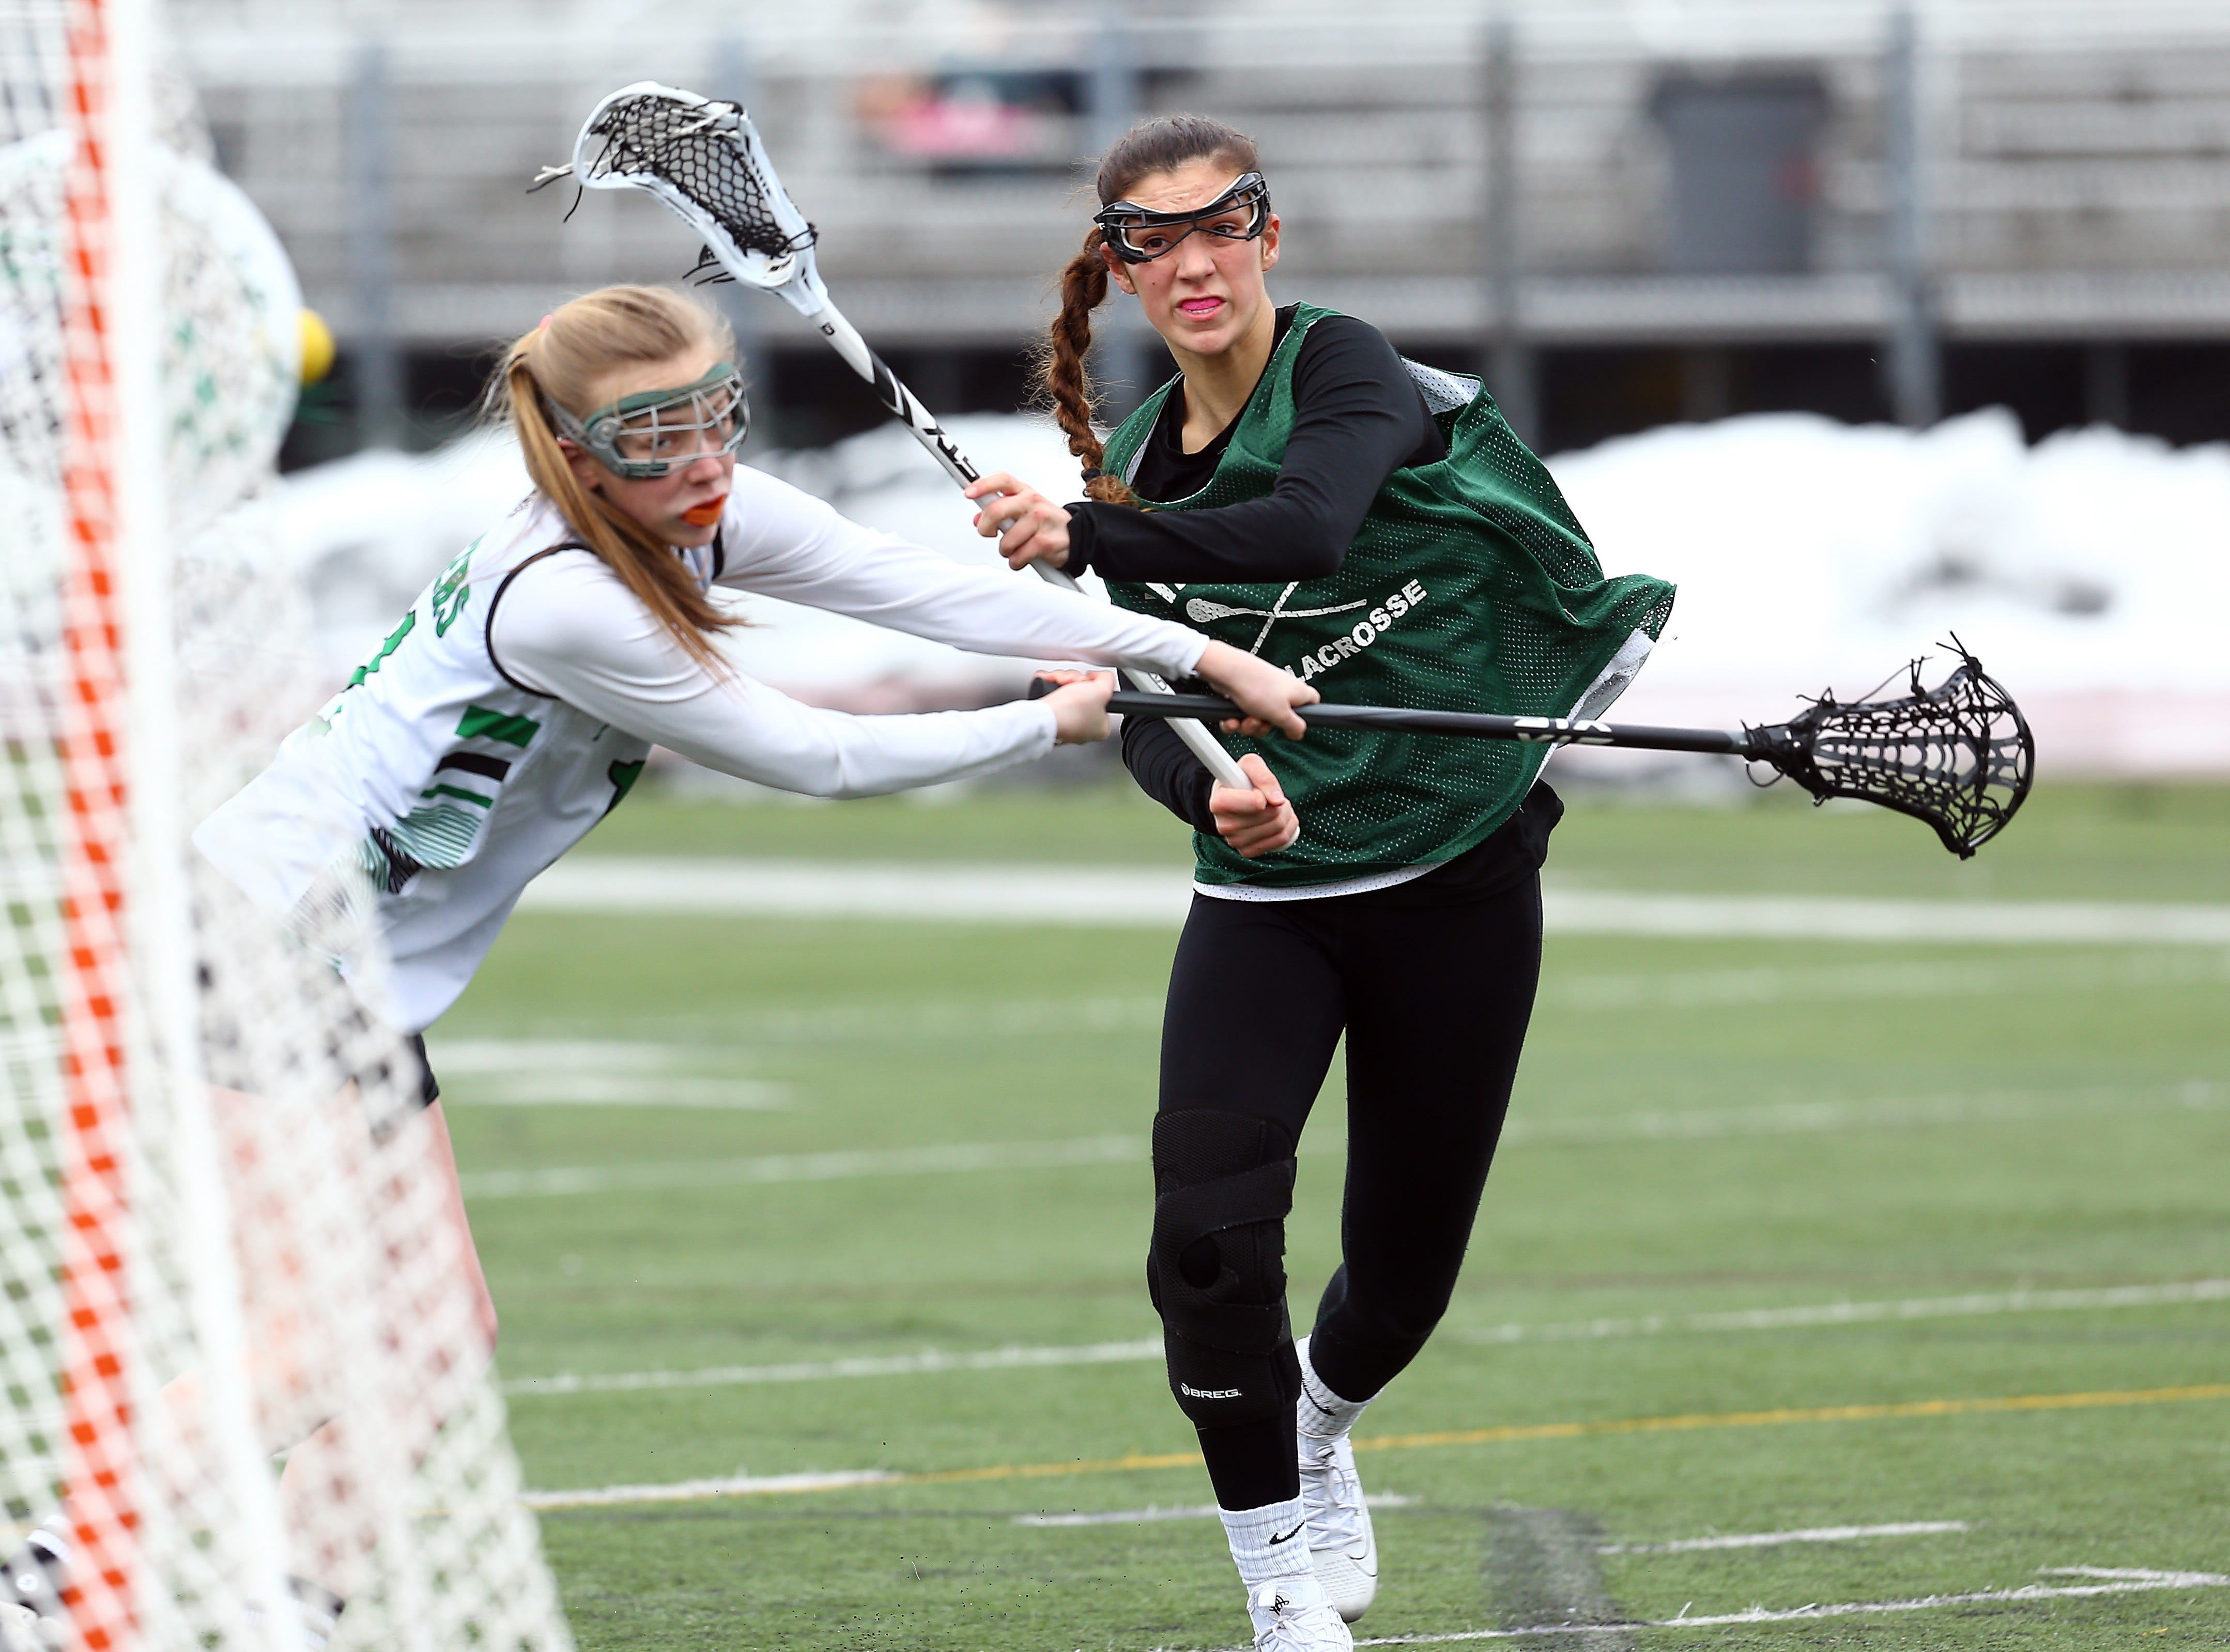 Kinnelon sophomore midfielder Taylor Smith shoots on goal vs. Livingston during their girls lacrosse scrimmage. March 23, 2018. Livingston, NJ.